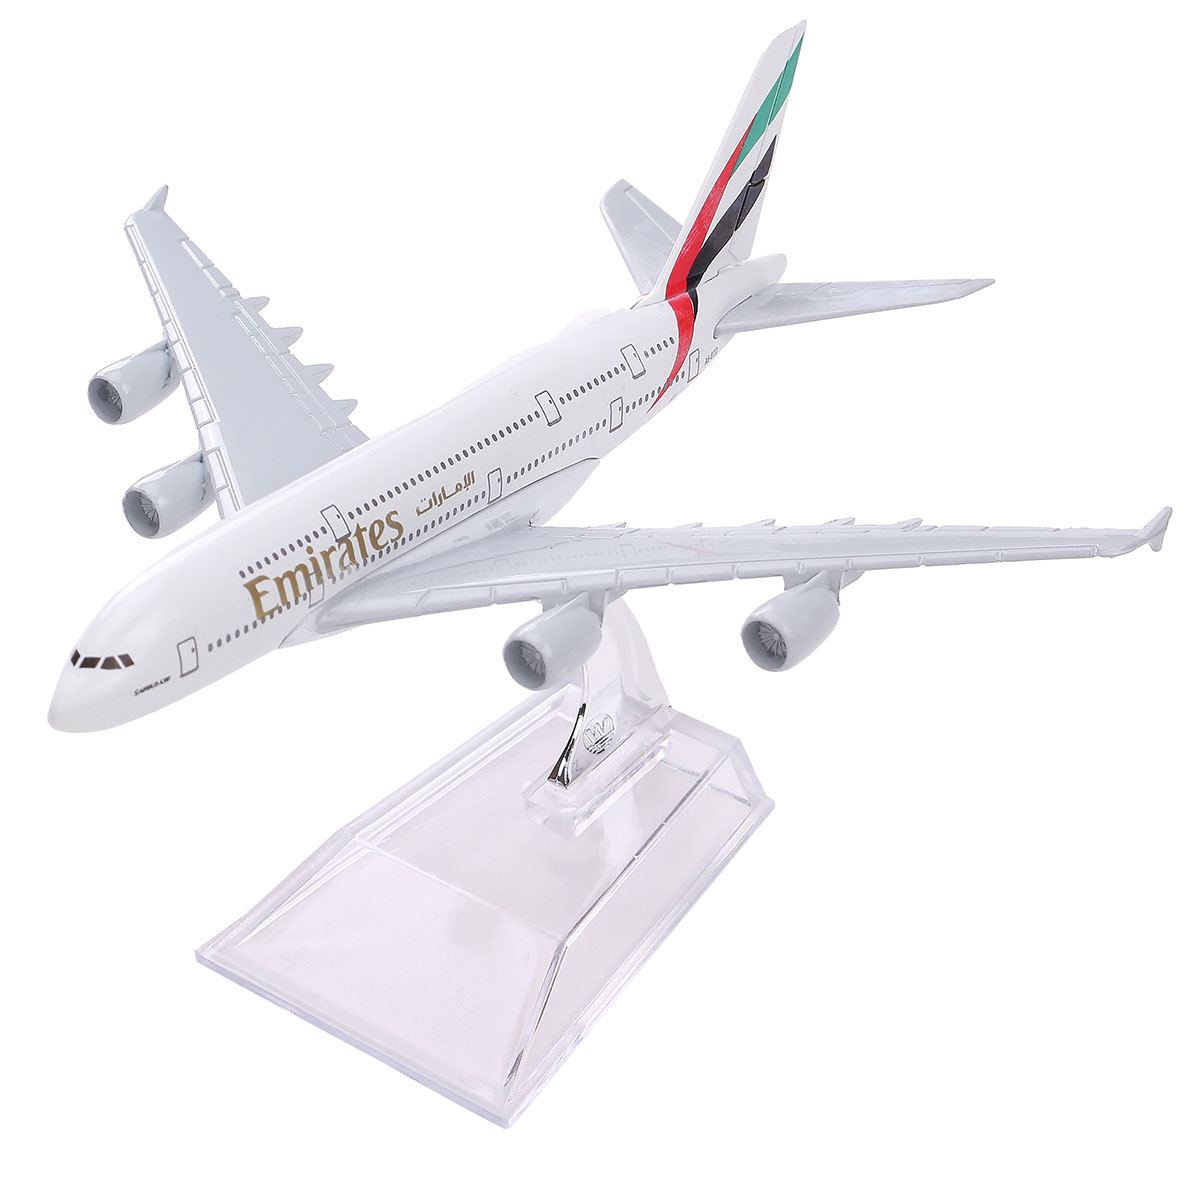 New Airbus380 Emirates Airlines A-380 Aircraft Aeroplan 16cm High Simulation Diecast Model United Arab Emirates A380 emirates concorde hotel